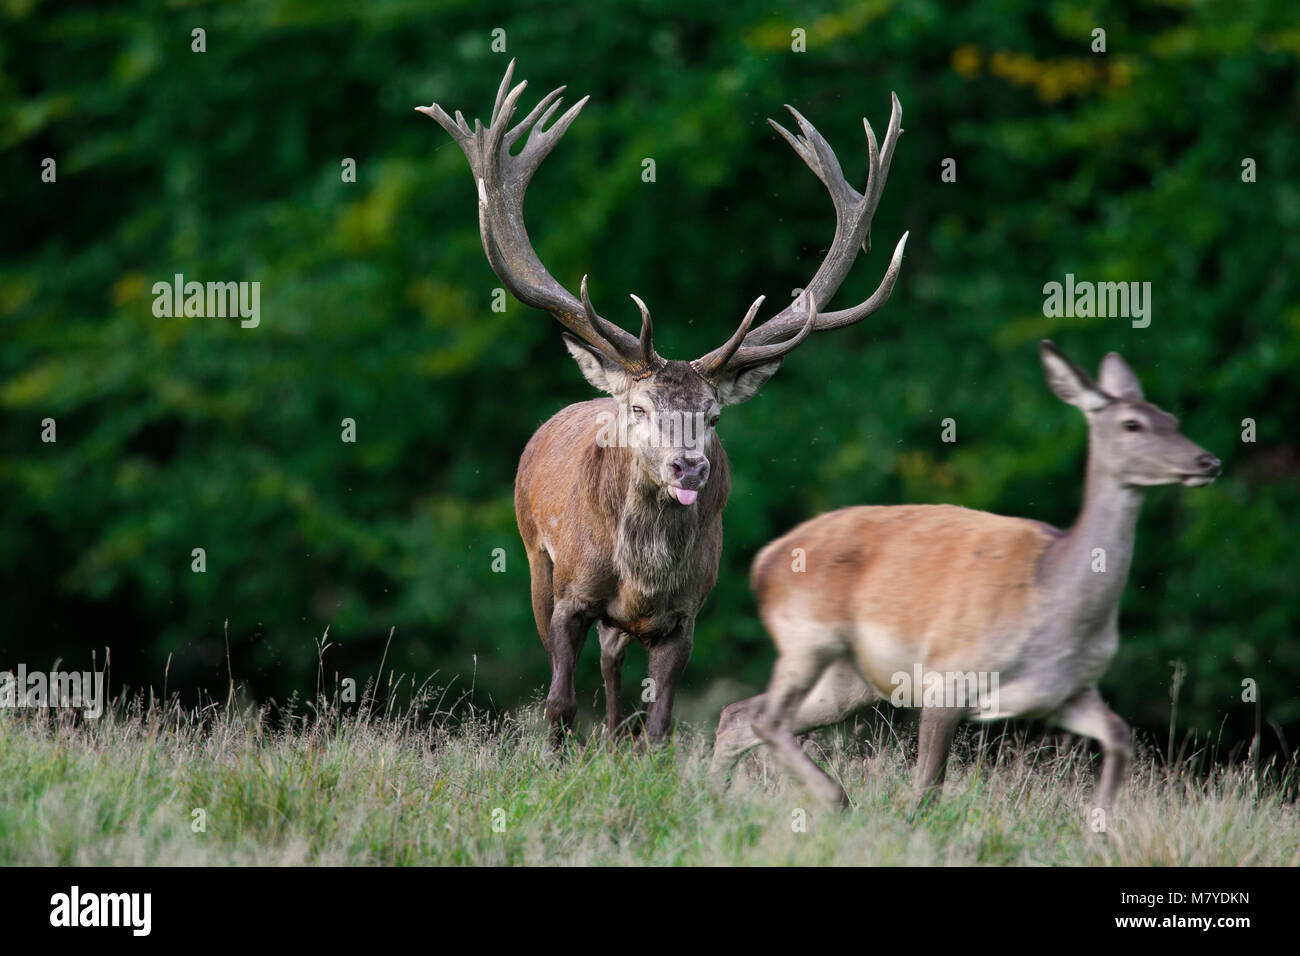 Red deer (Cervus elaphus) stag checking out hind / female in heat by flicking tongue during the rut in autumn - Stock Image